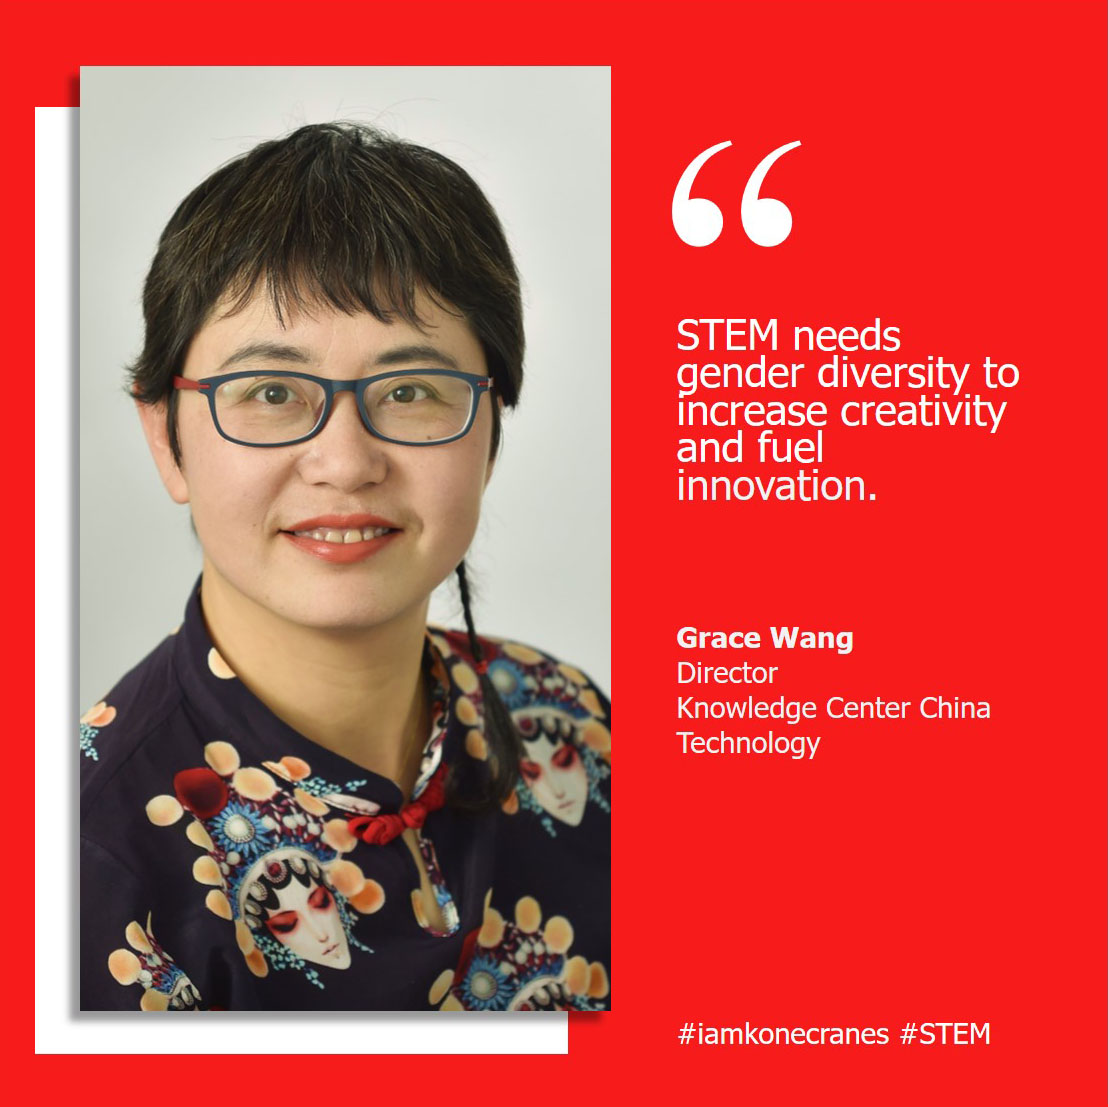 #STEM needs gender diversity to increase creativity and fuel innovation. Equality between women and men at all levels is a cornerstone of the @UN's 2030 agenda, but we all need to do our part. #iamkonecranes #ALD2020 https://t.co/S8J8bYwdSp